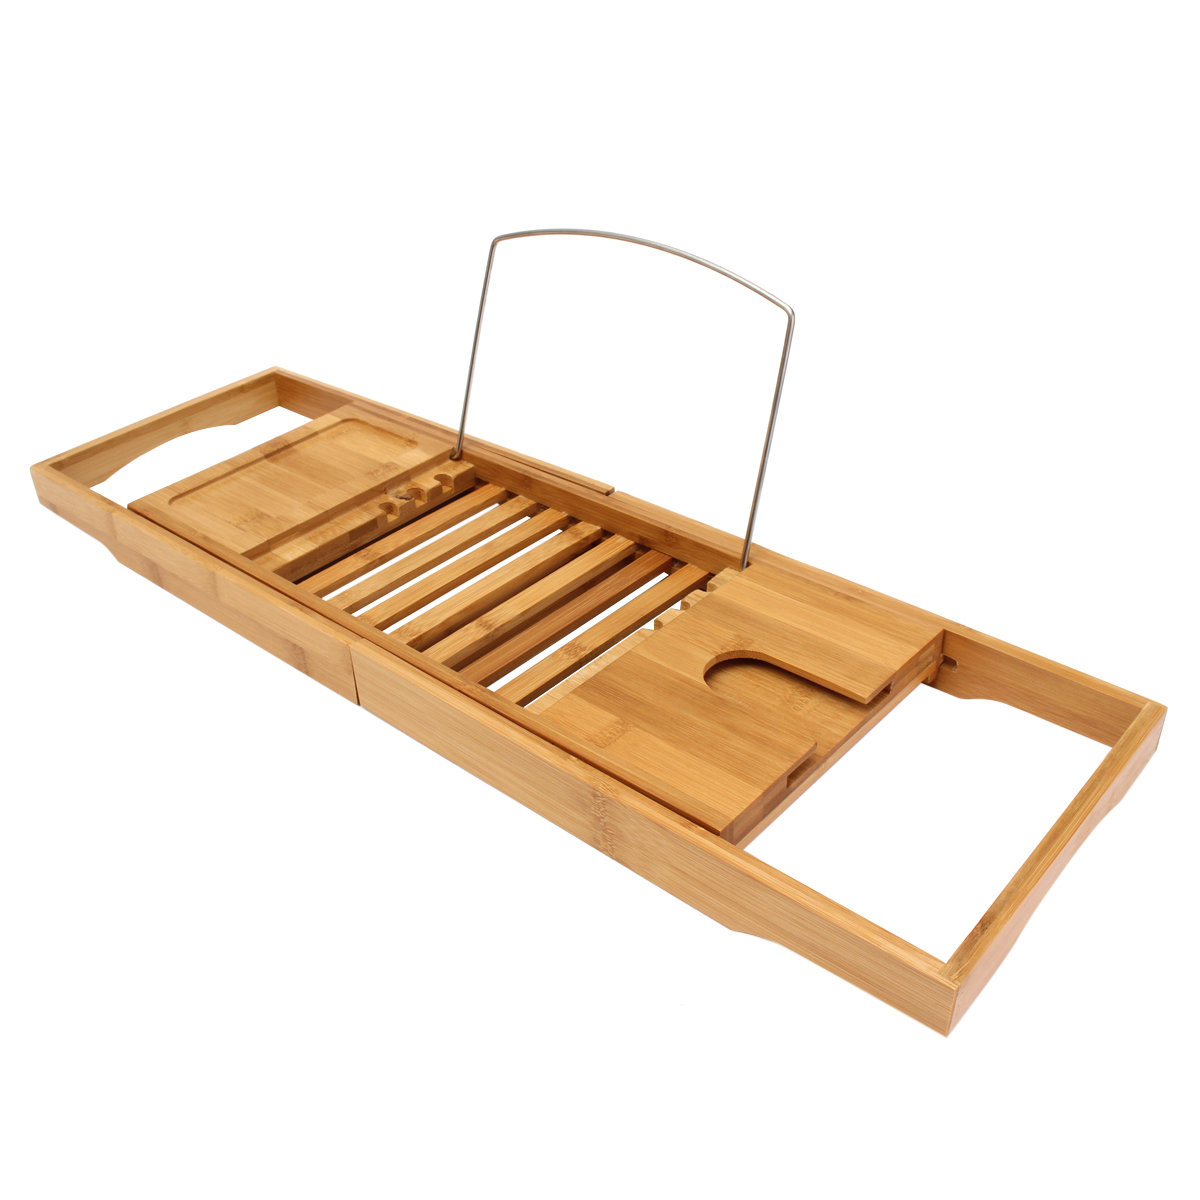 Aliexpress.com : Buy Bamboo Bathtub Caddy Tray Organizer with ...